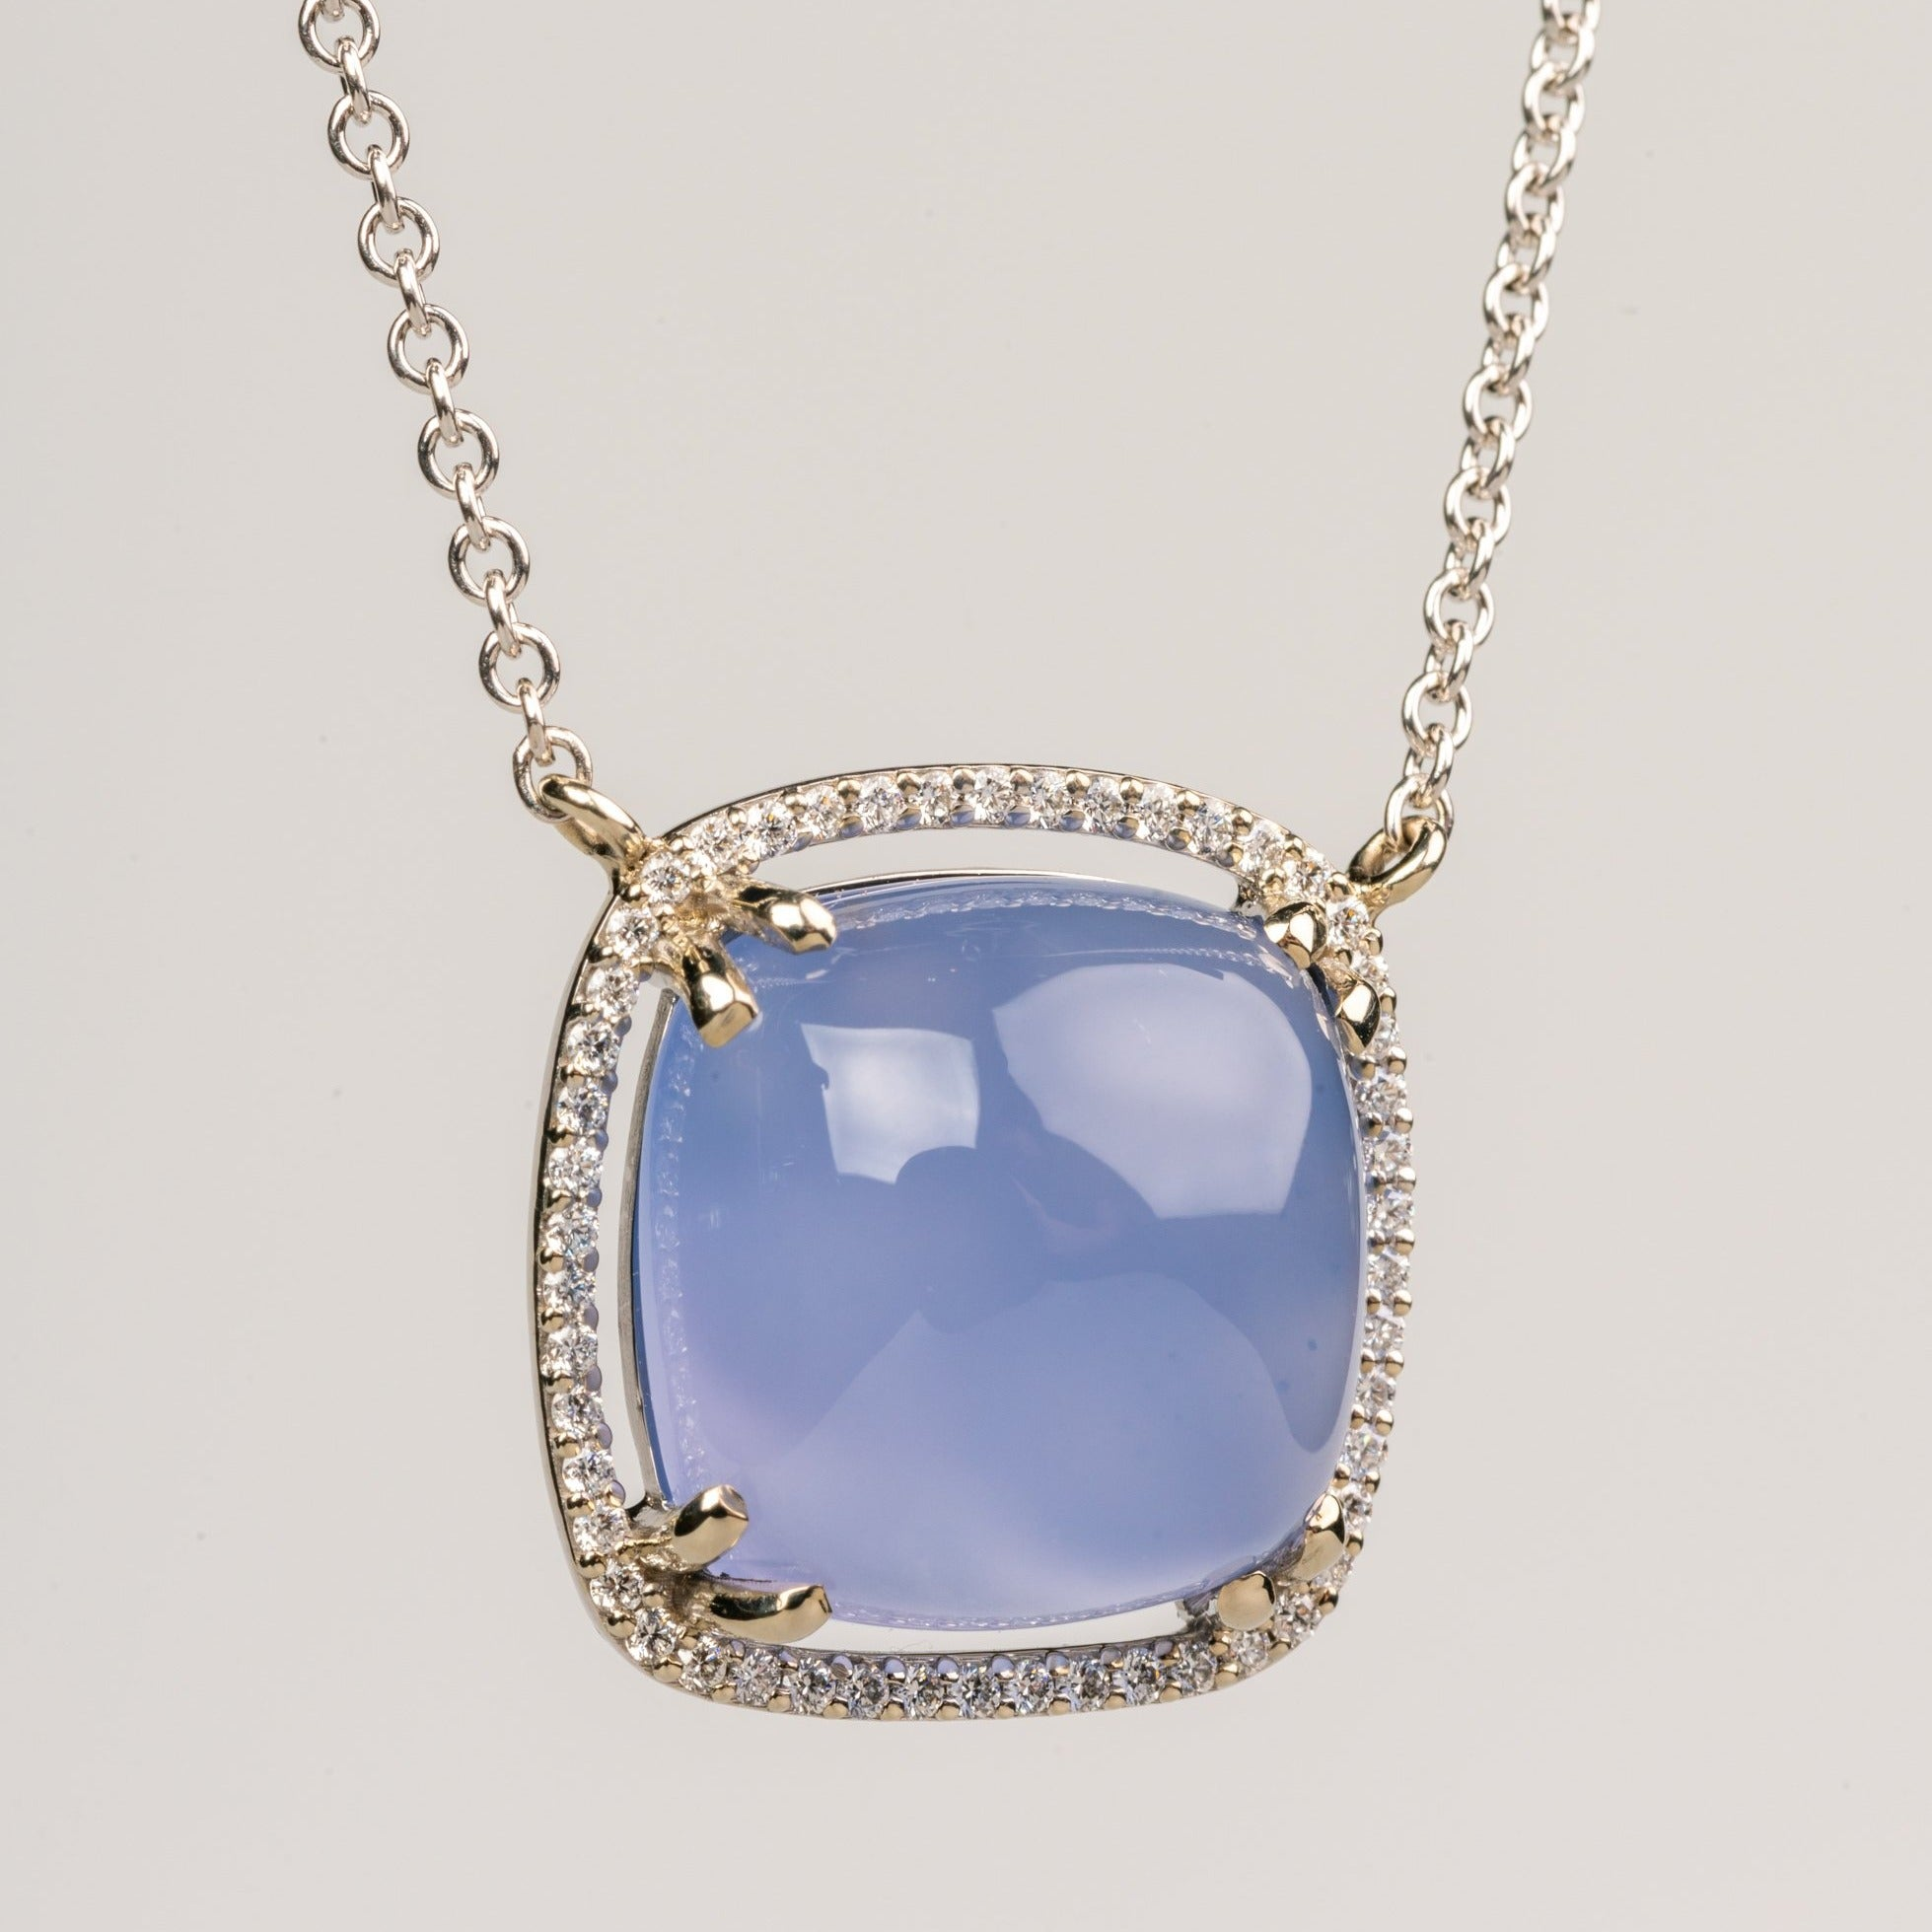 Blue Chalcedony and White Diamond Necklace in 18k White Gold